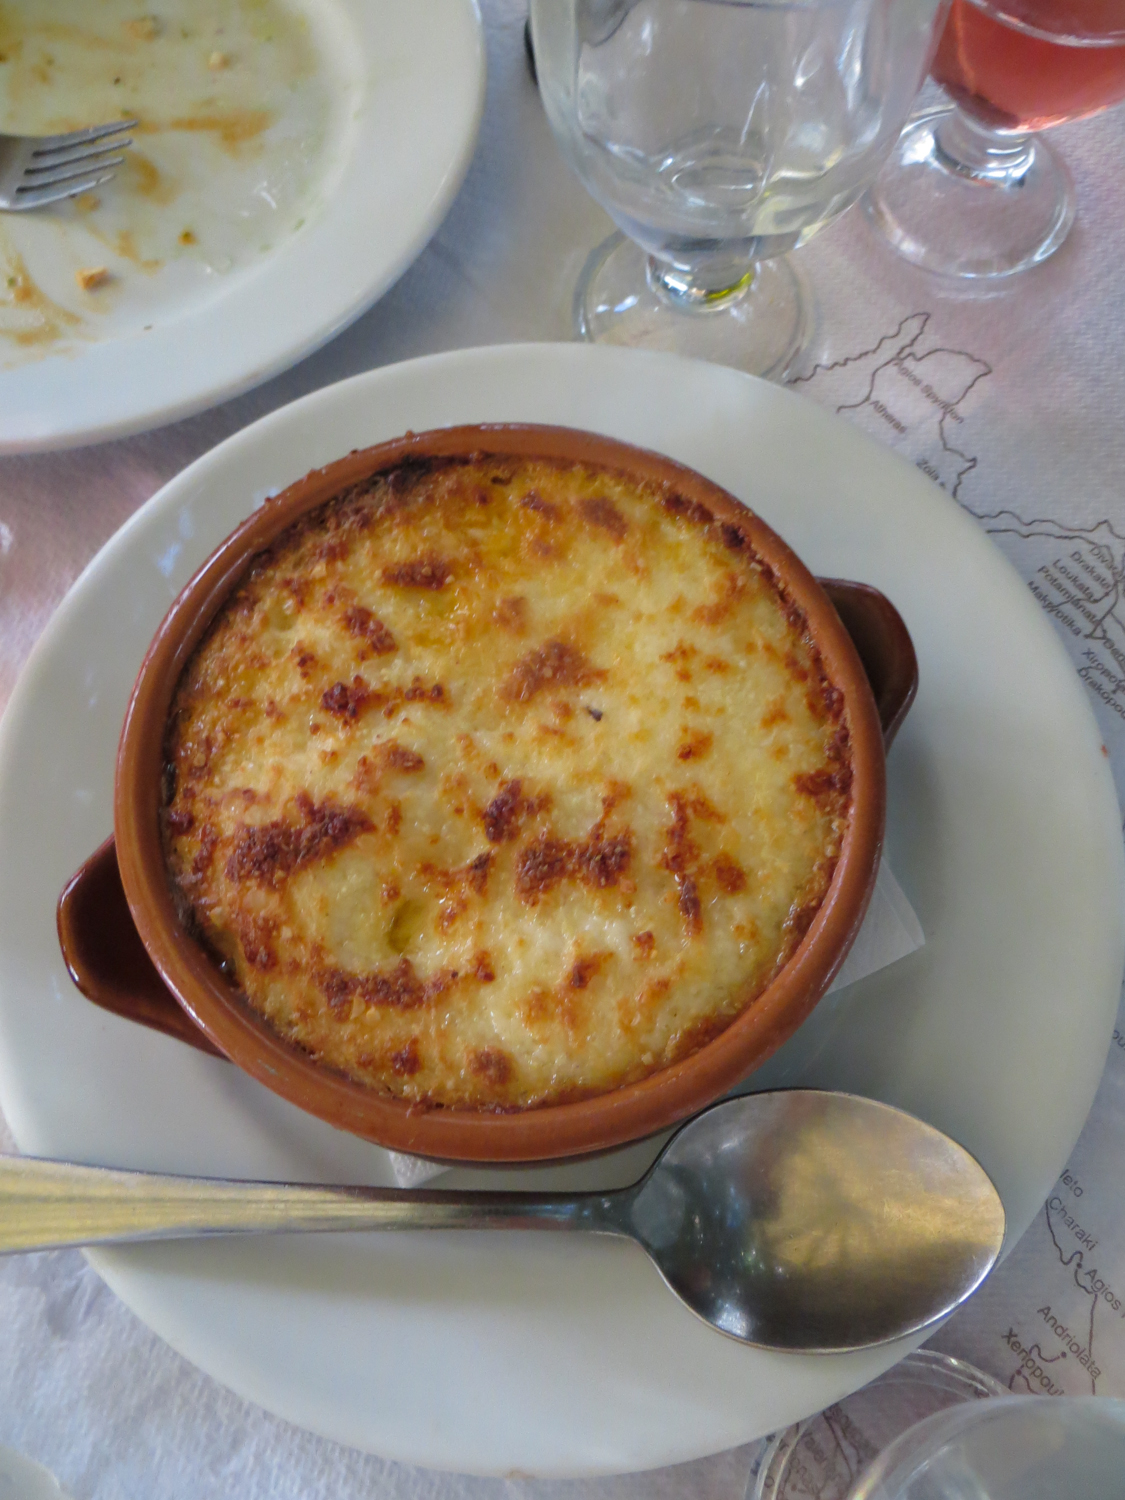 Here Is A Photo Of The Legendary Moussaka Pipping Hot In Its Own Terracotta Pot It Looks Similar To An English Cottage Or Shepherds Pie